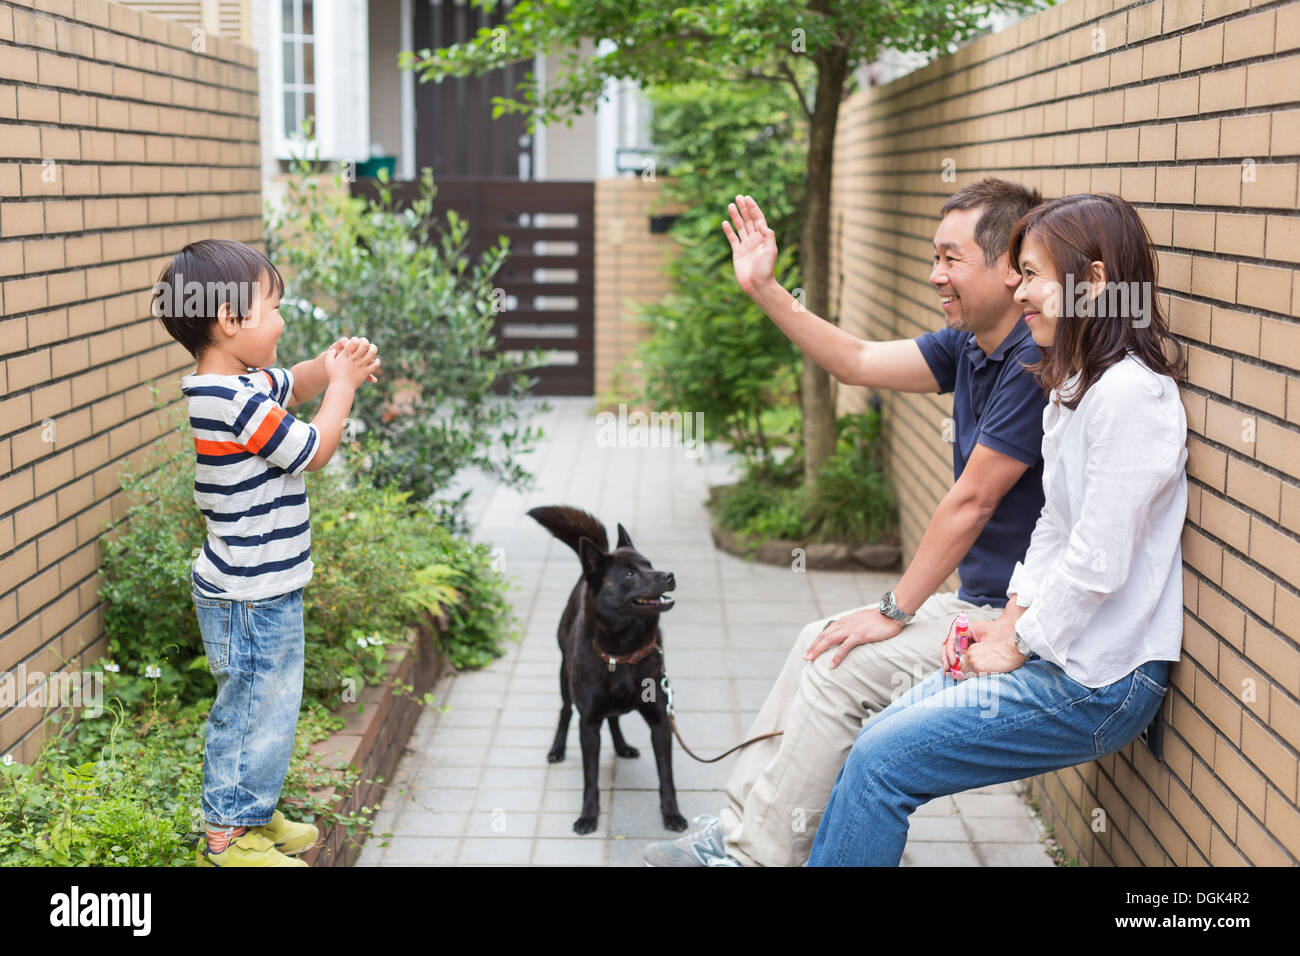 Family with dog, father waving to son - Stock Image